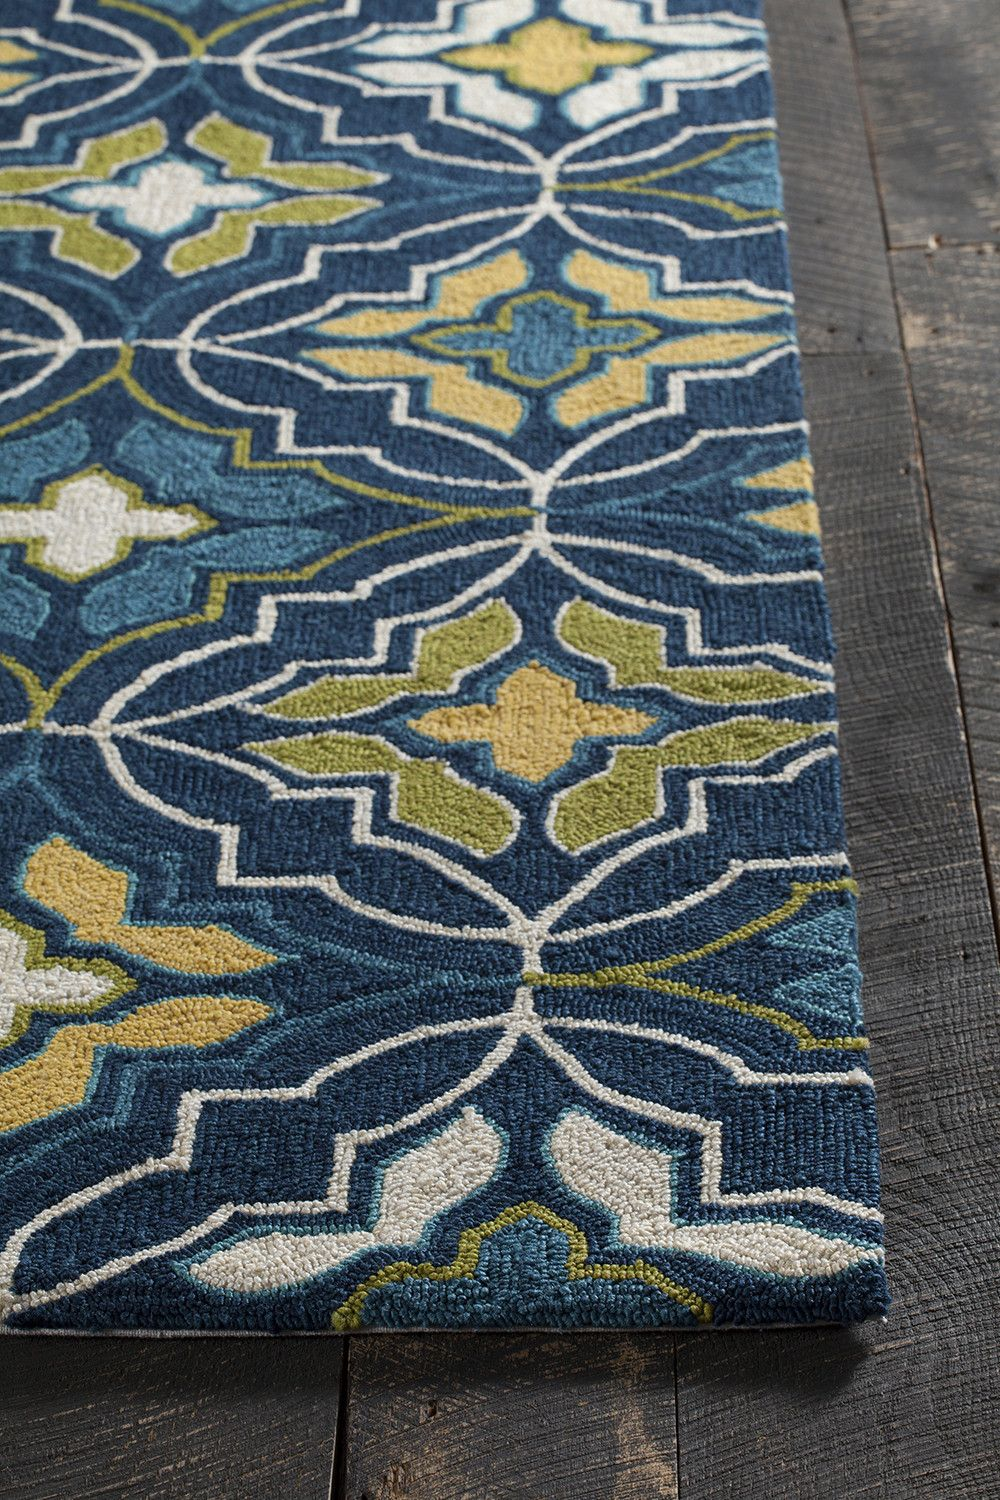 Terra Collection Hand Tufted Area Rug In Blue Green Yellow